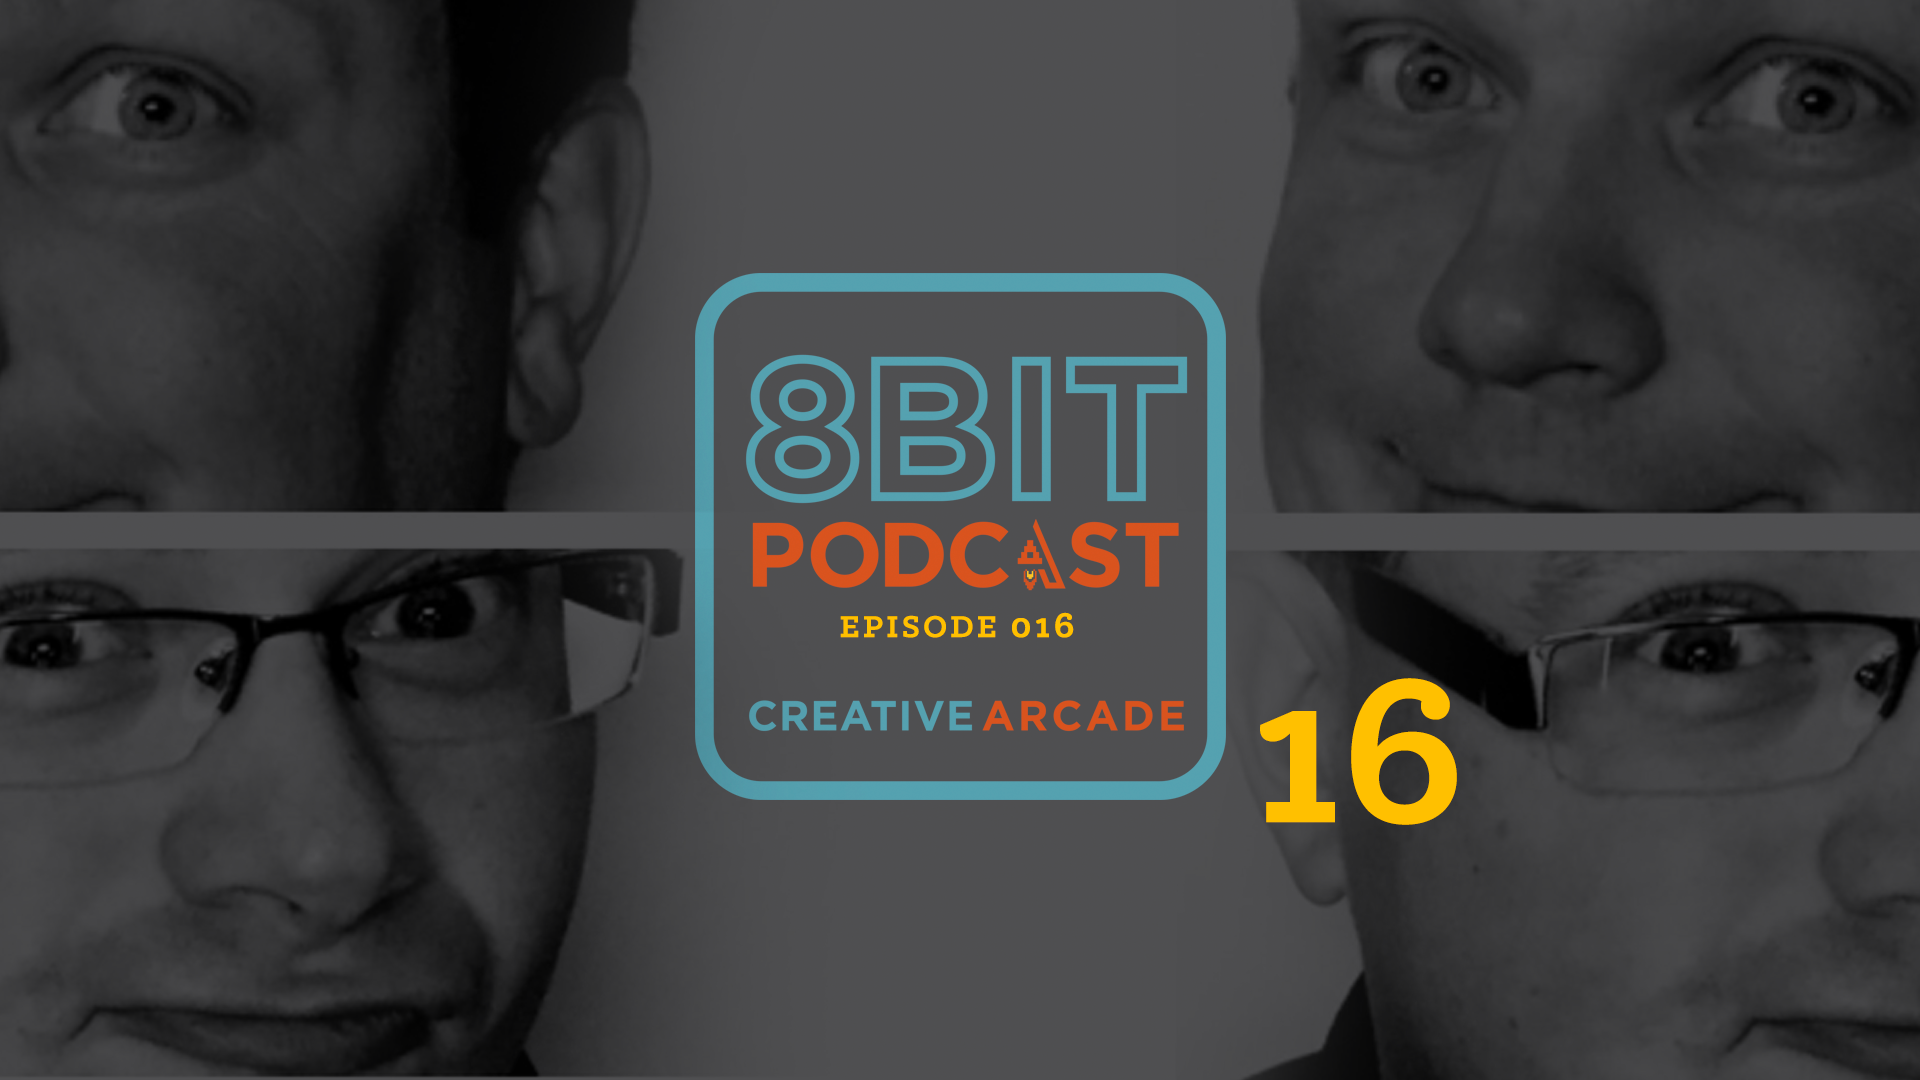 The 8Bit Podcast - Episode 016 Featured Image